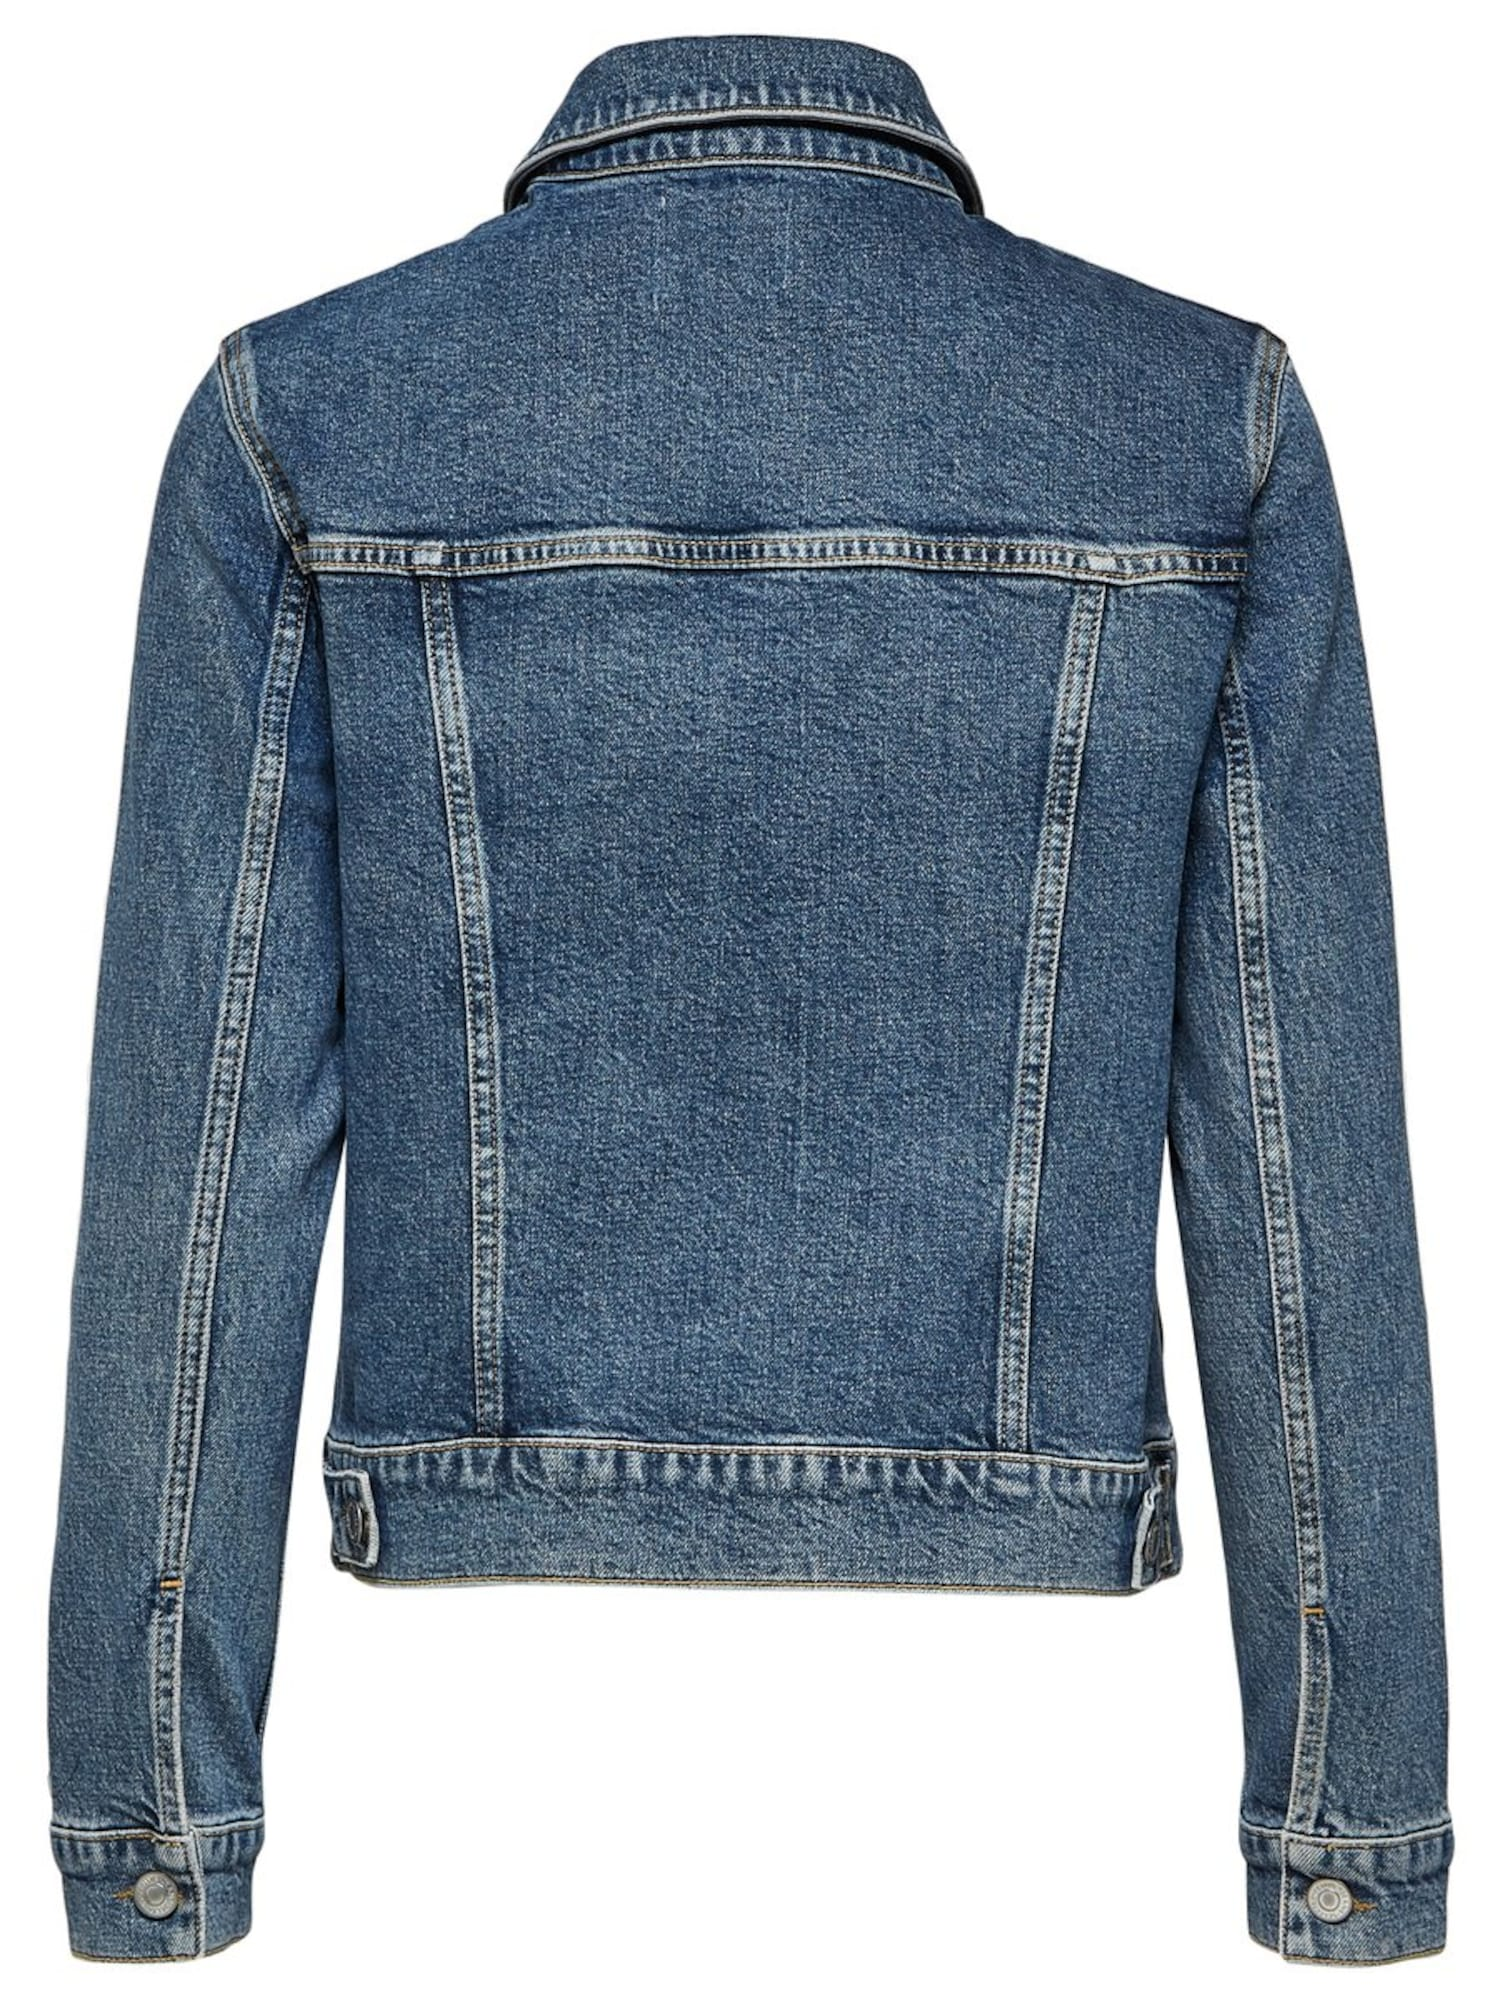 SELECTED FEMME, Dames Tussenjas, blauw denim